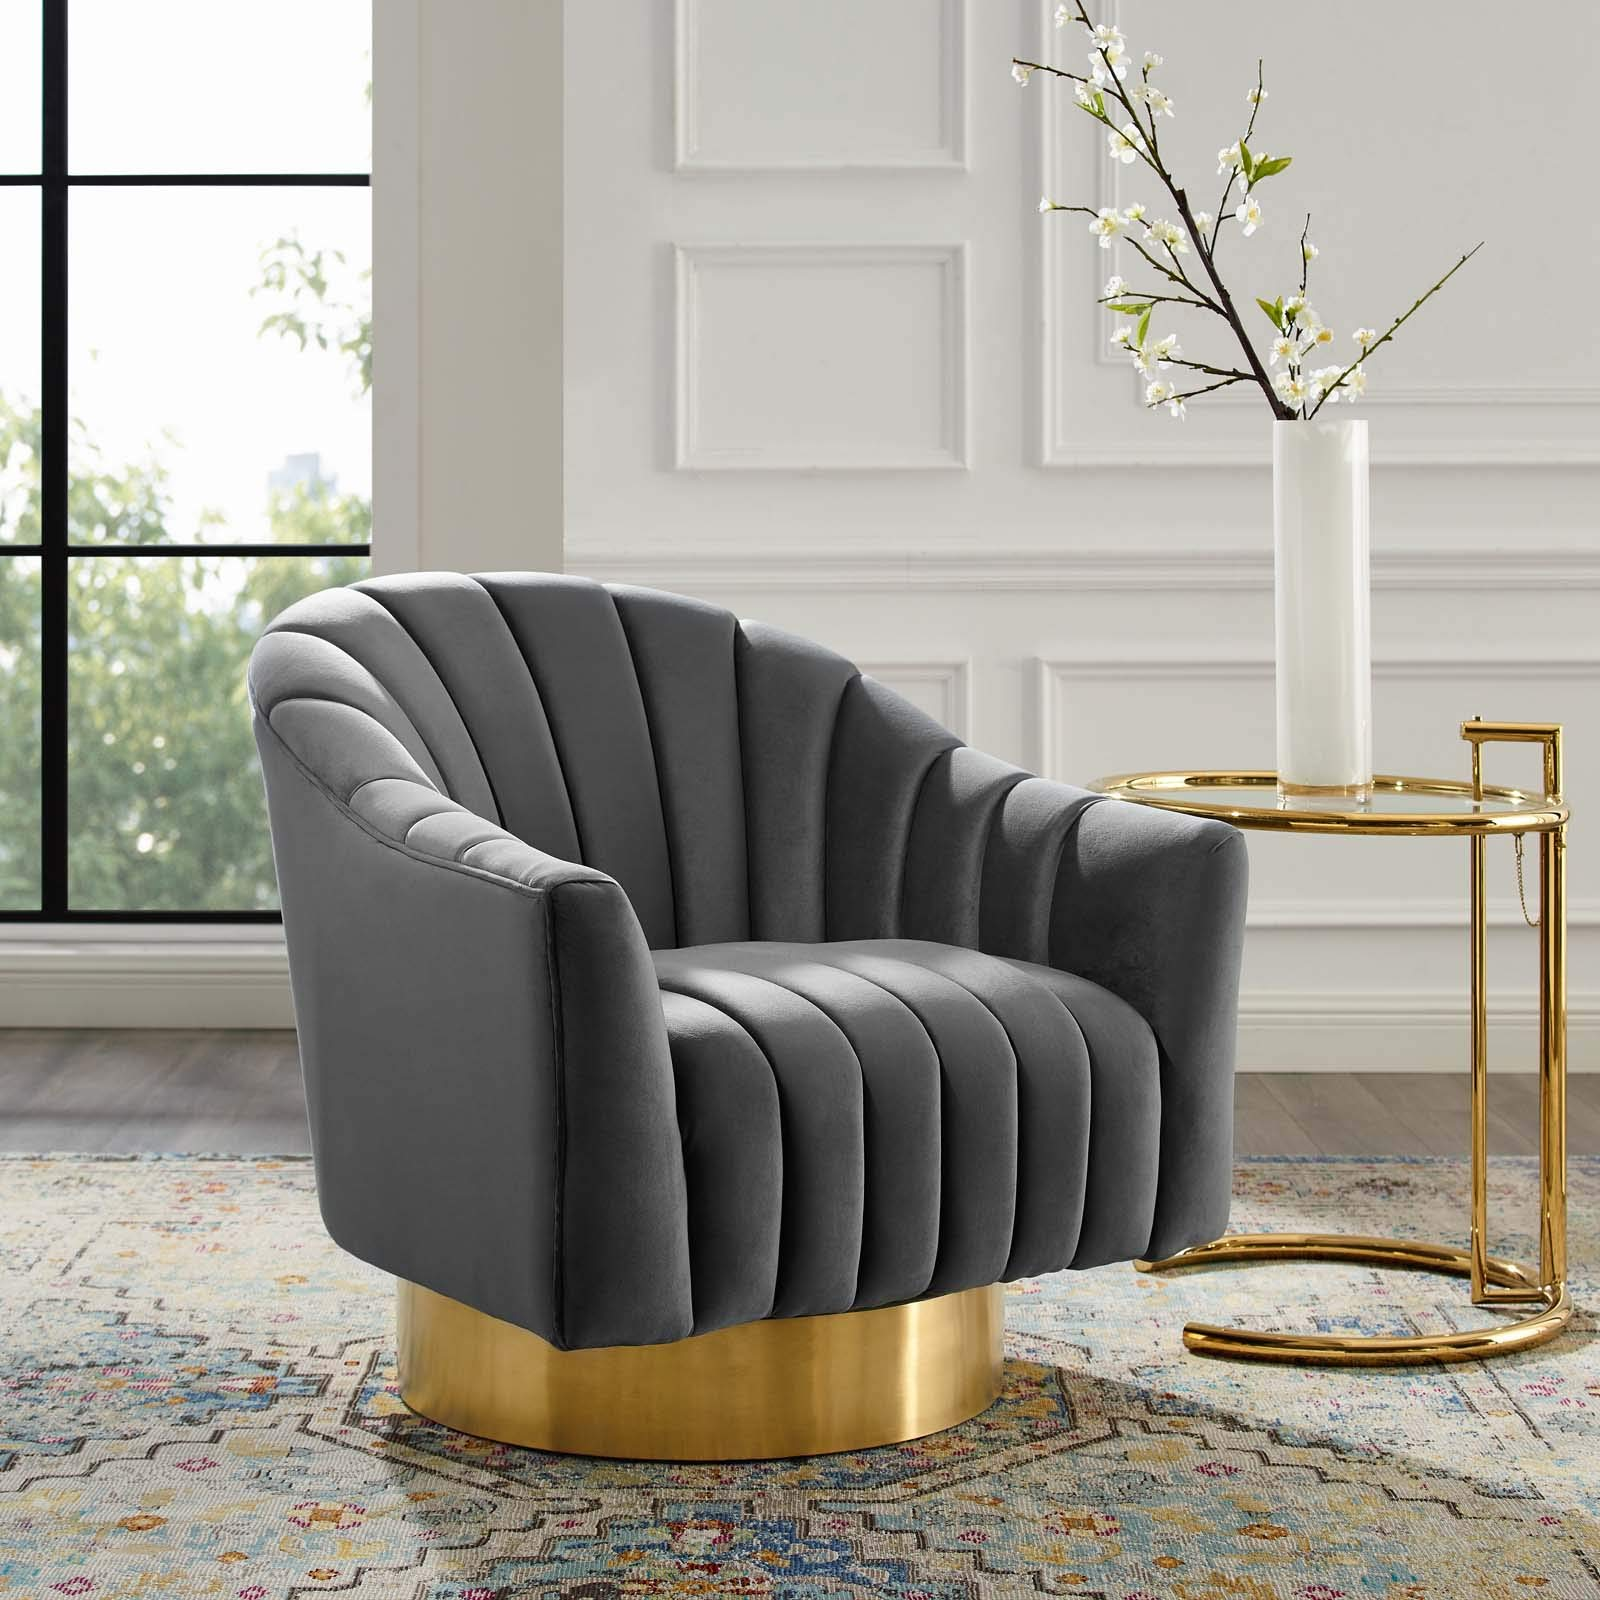 Brilliant Details About Luxury Channel Tufted Velvet Accent Lounge Living Room Swivel Chair In Gray Beatyapartments Chair Design Images Beatyapartmentscom